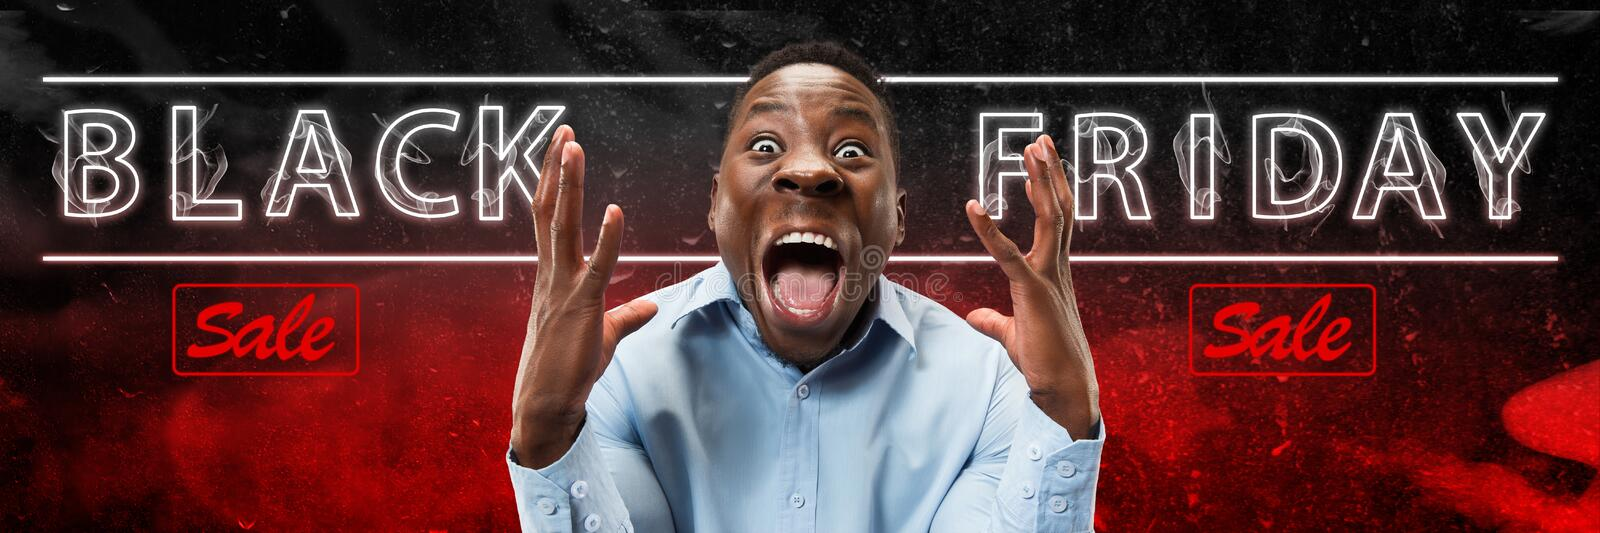 Black friday, sales. Modern design. Contemporary art collage. Black friday, sales concept. Neon lighted letters on gradient background. Astonished man screaming stock images